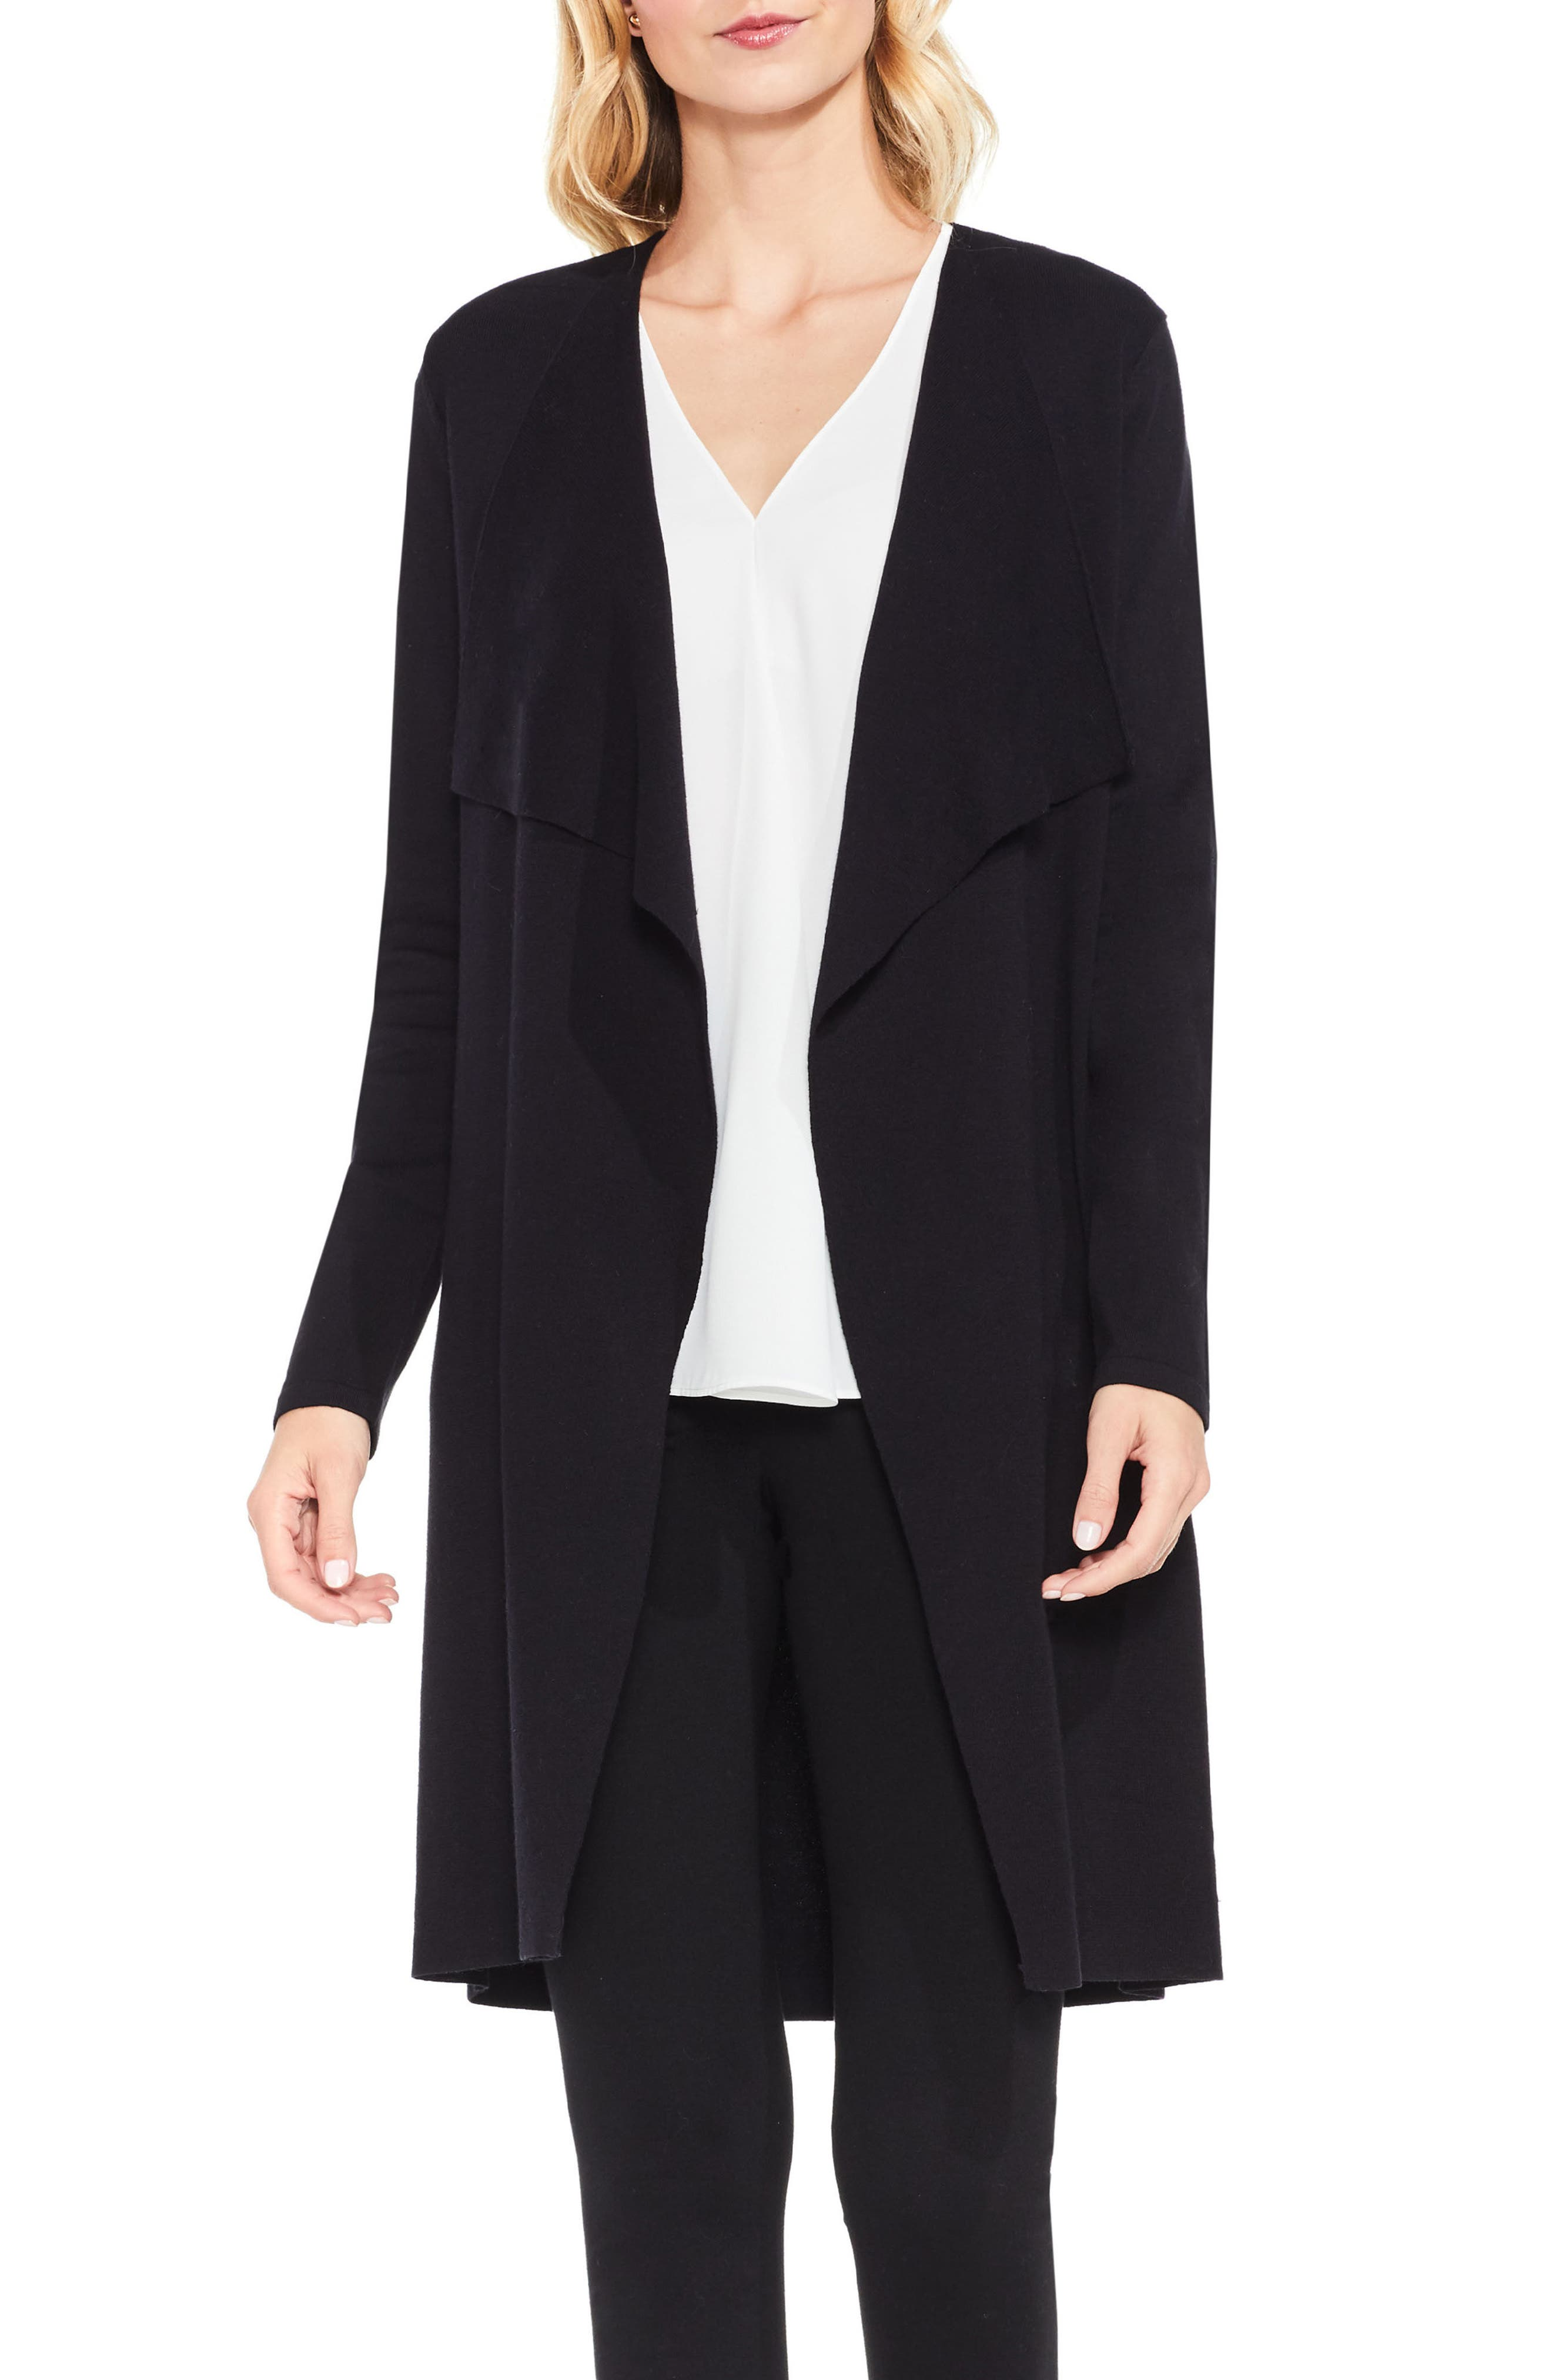 Alternate Image 1 Selected - Vince Camuto Drape Front Long Cardigan